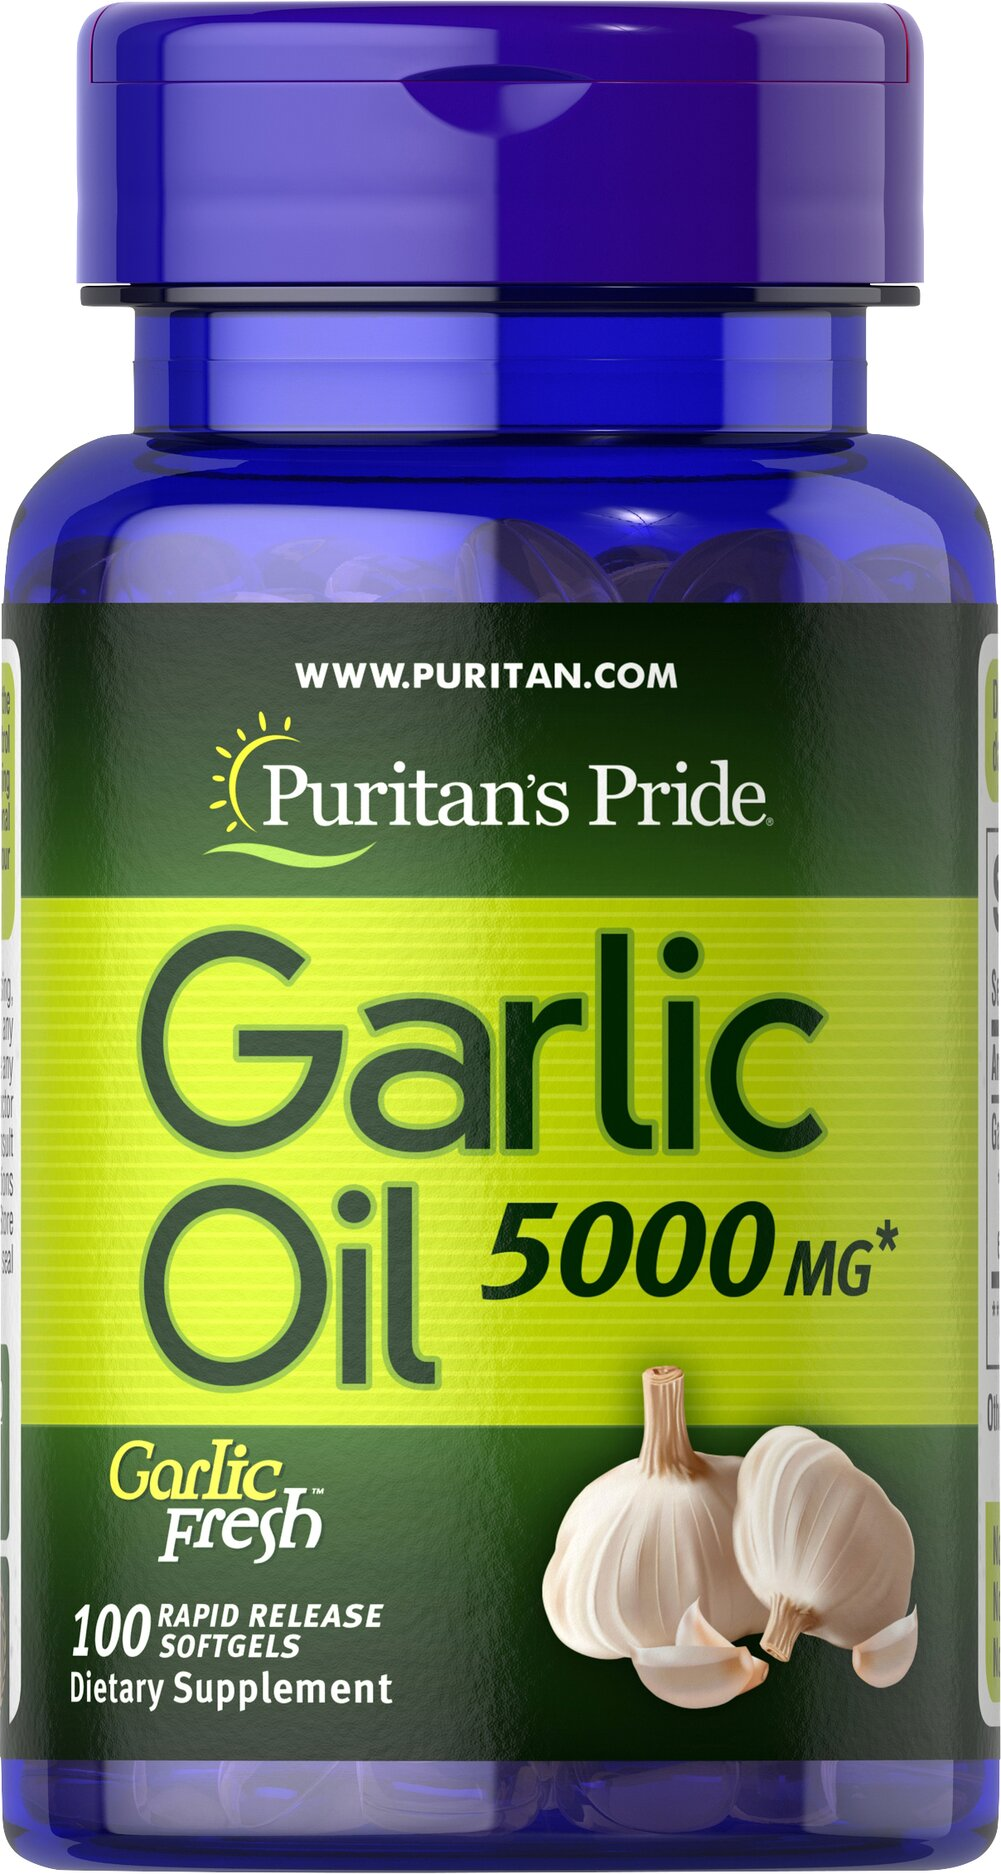 Garlic Oil 5000 mg Thumbnail Alternate Bottle View